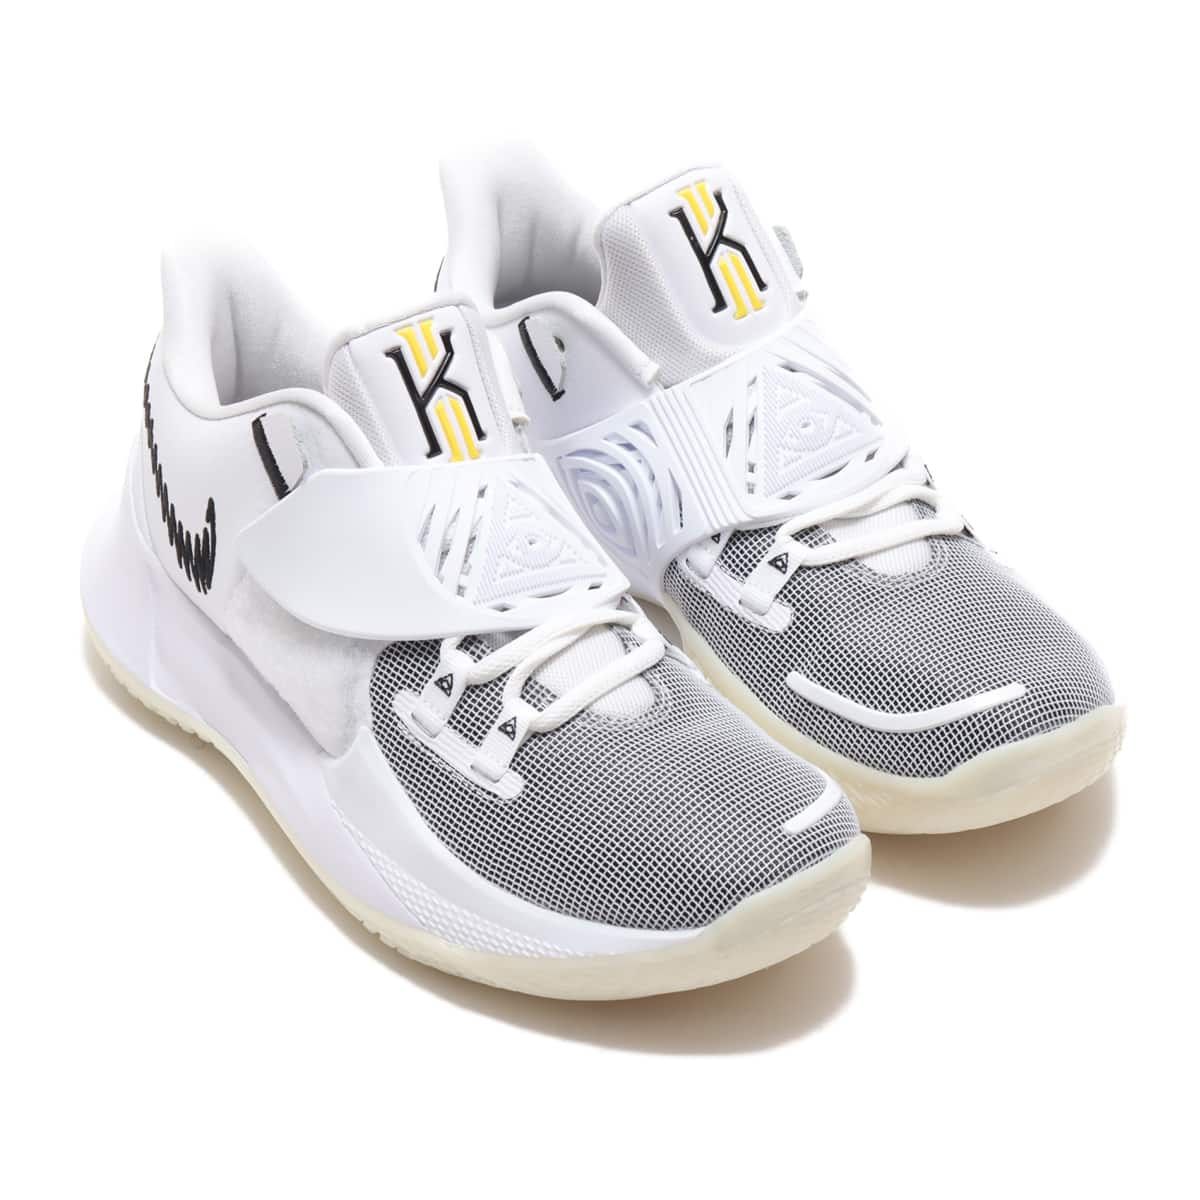 NIKE KYRIE LOW 3 EP WHITE/BLACK 20FA-I_photo_large